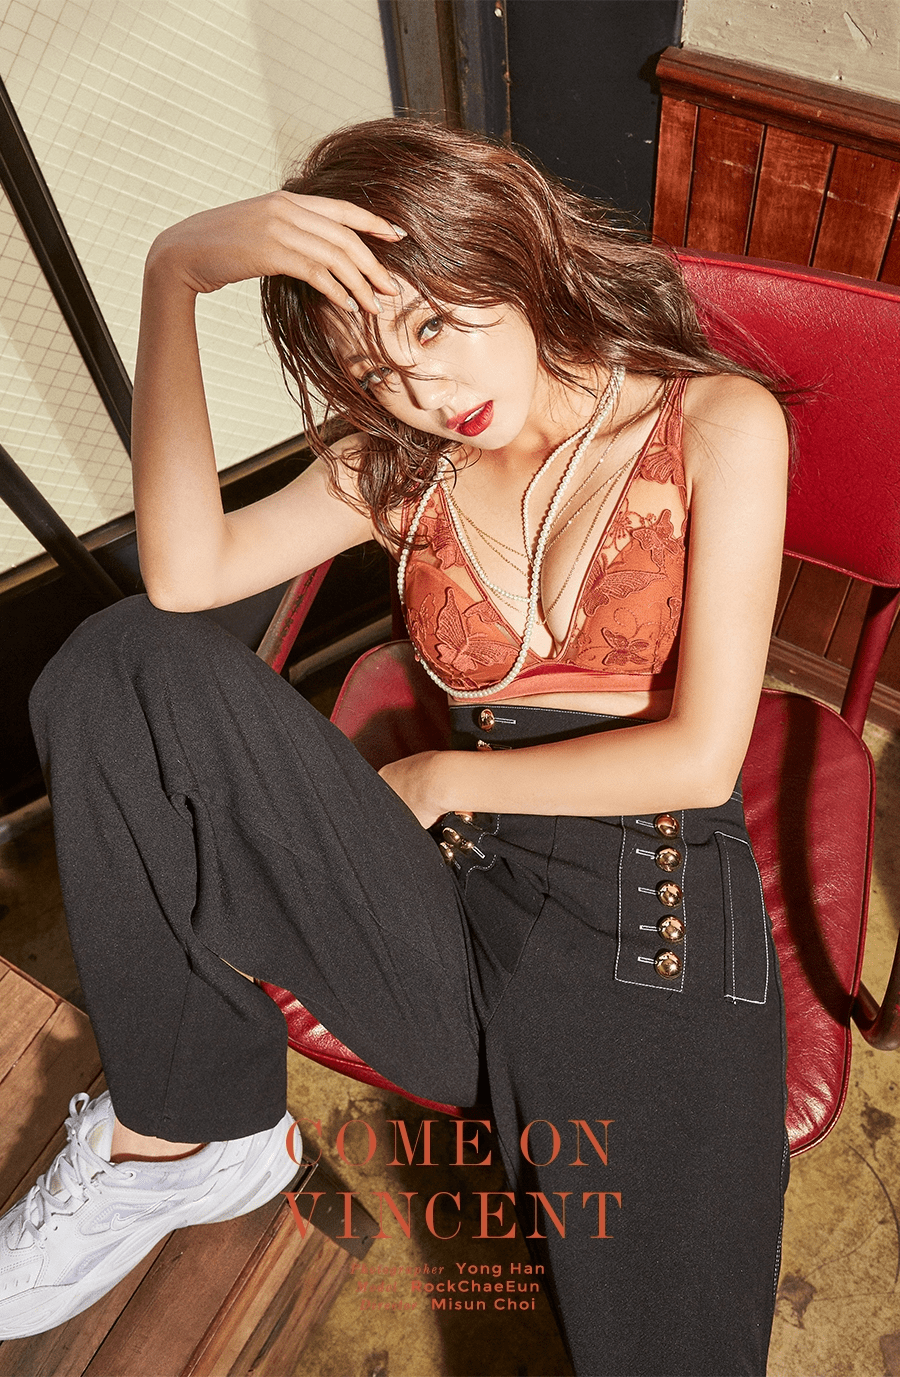 Lee Chaeeun - COME ON VINCENT - December 2018 Lingerie Photoshoot (full set in comments)